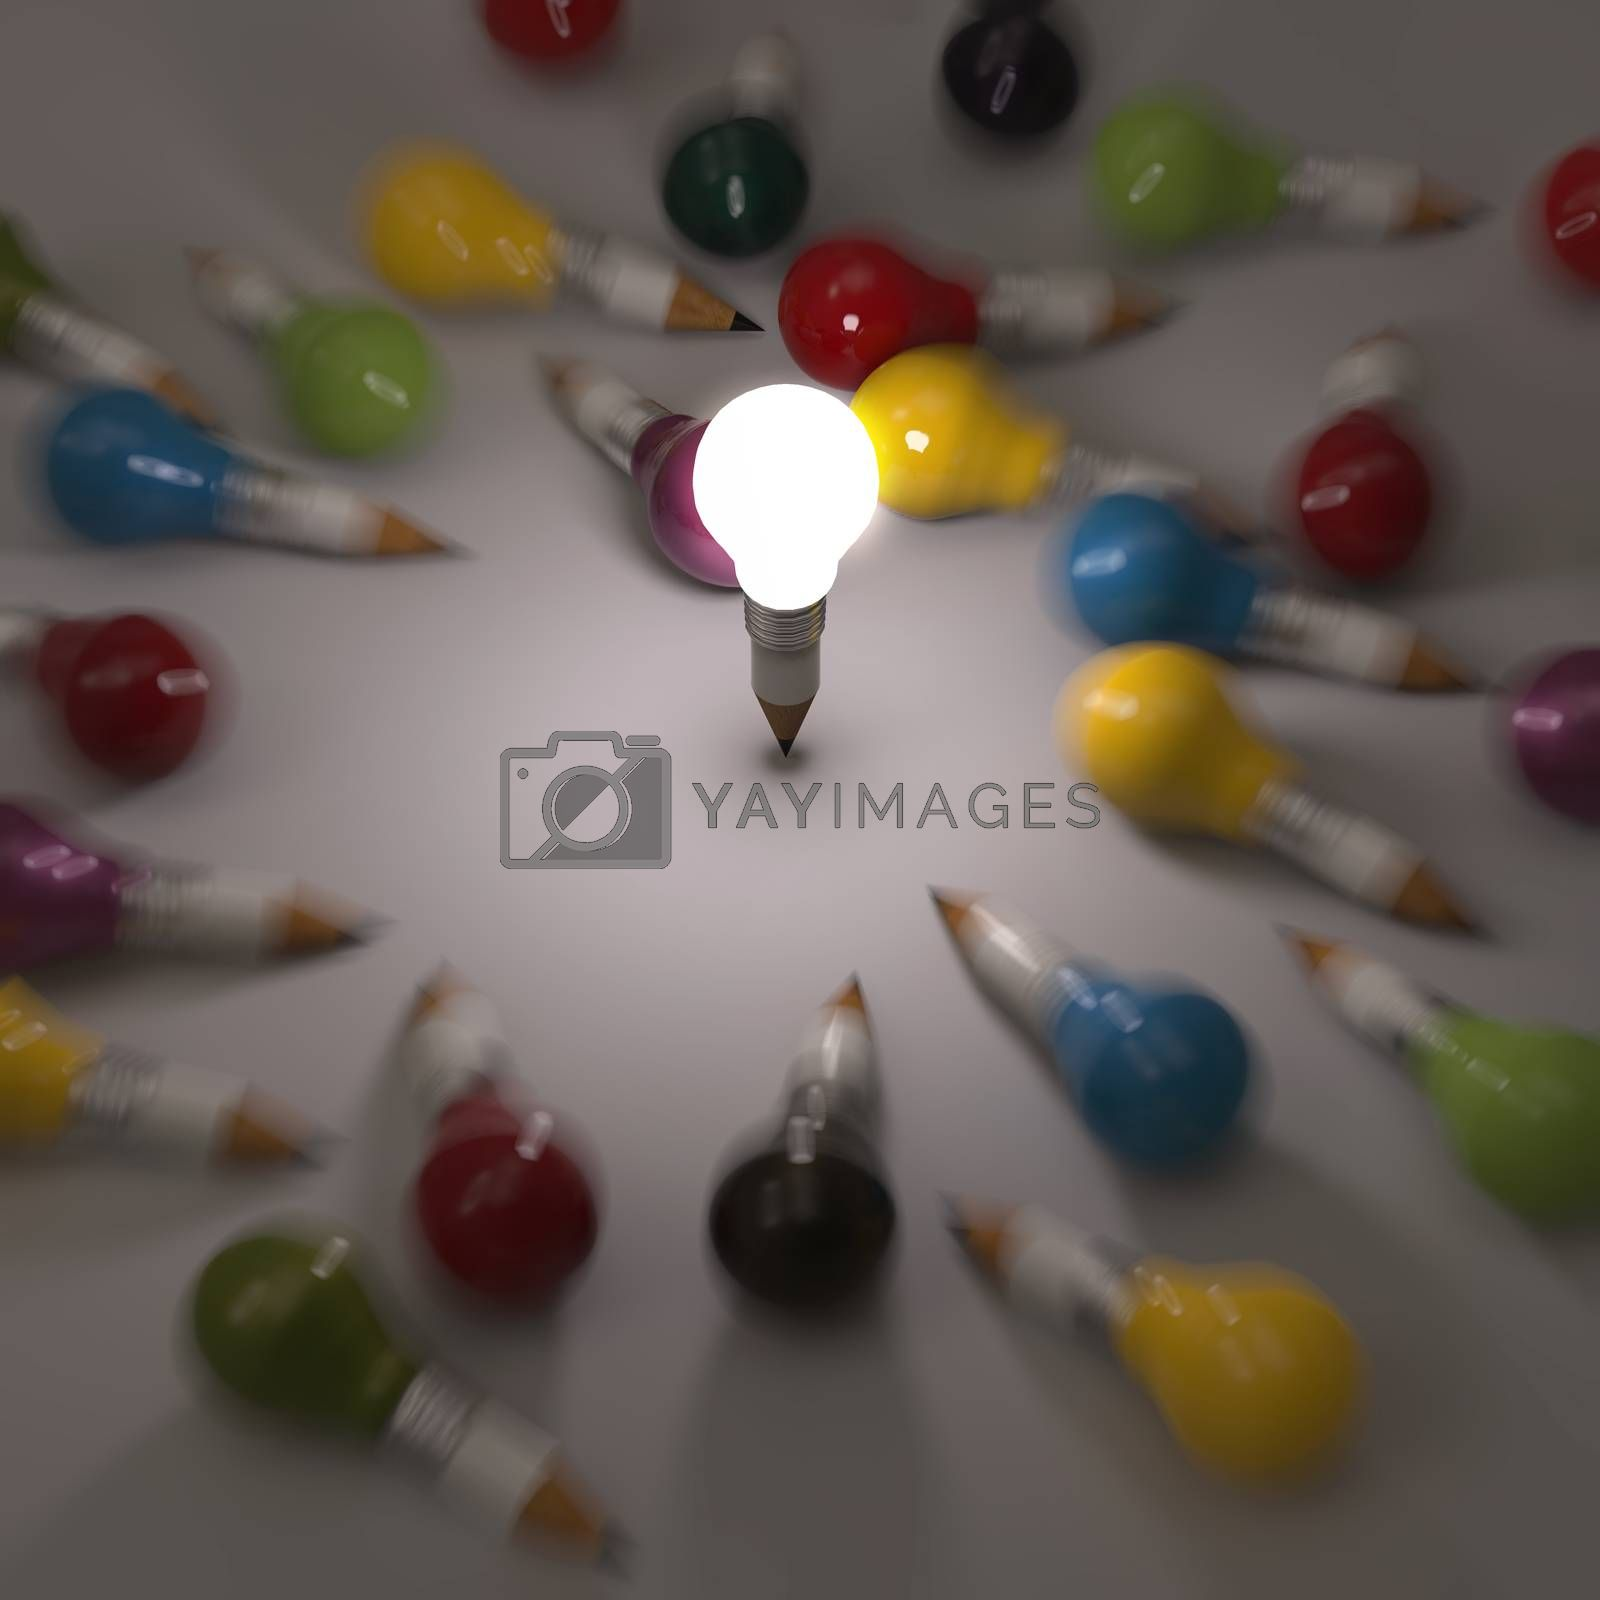 Royalty free image of drawing idea pencil and light bulb concept creative and leadersh by everythingpossible